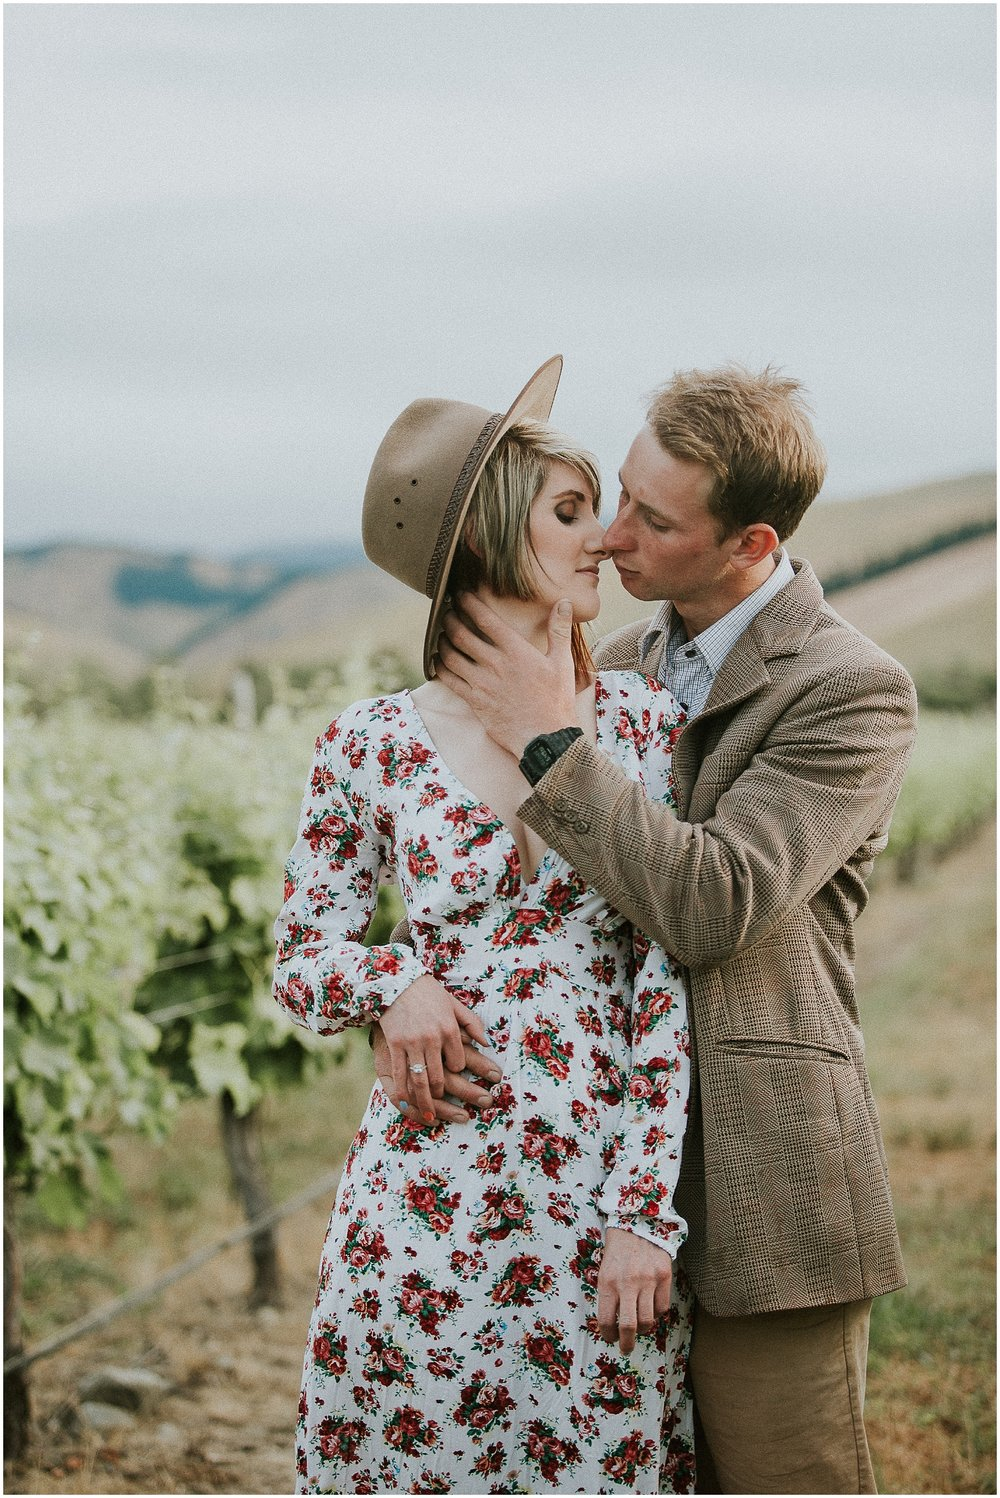 Young Couple In Vineyard Embracing